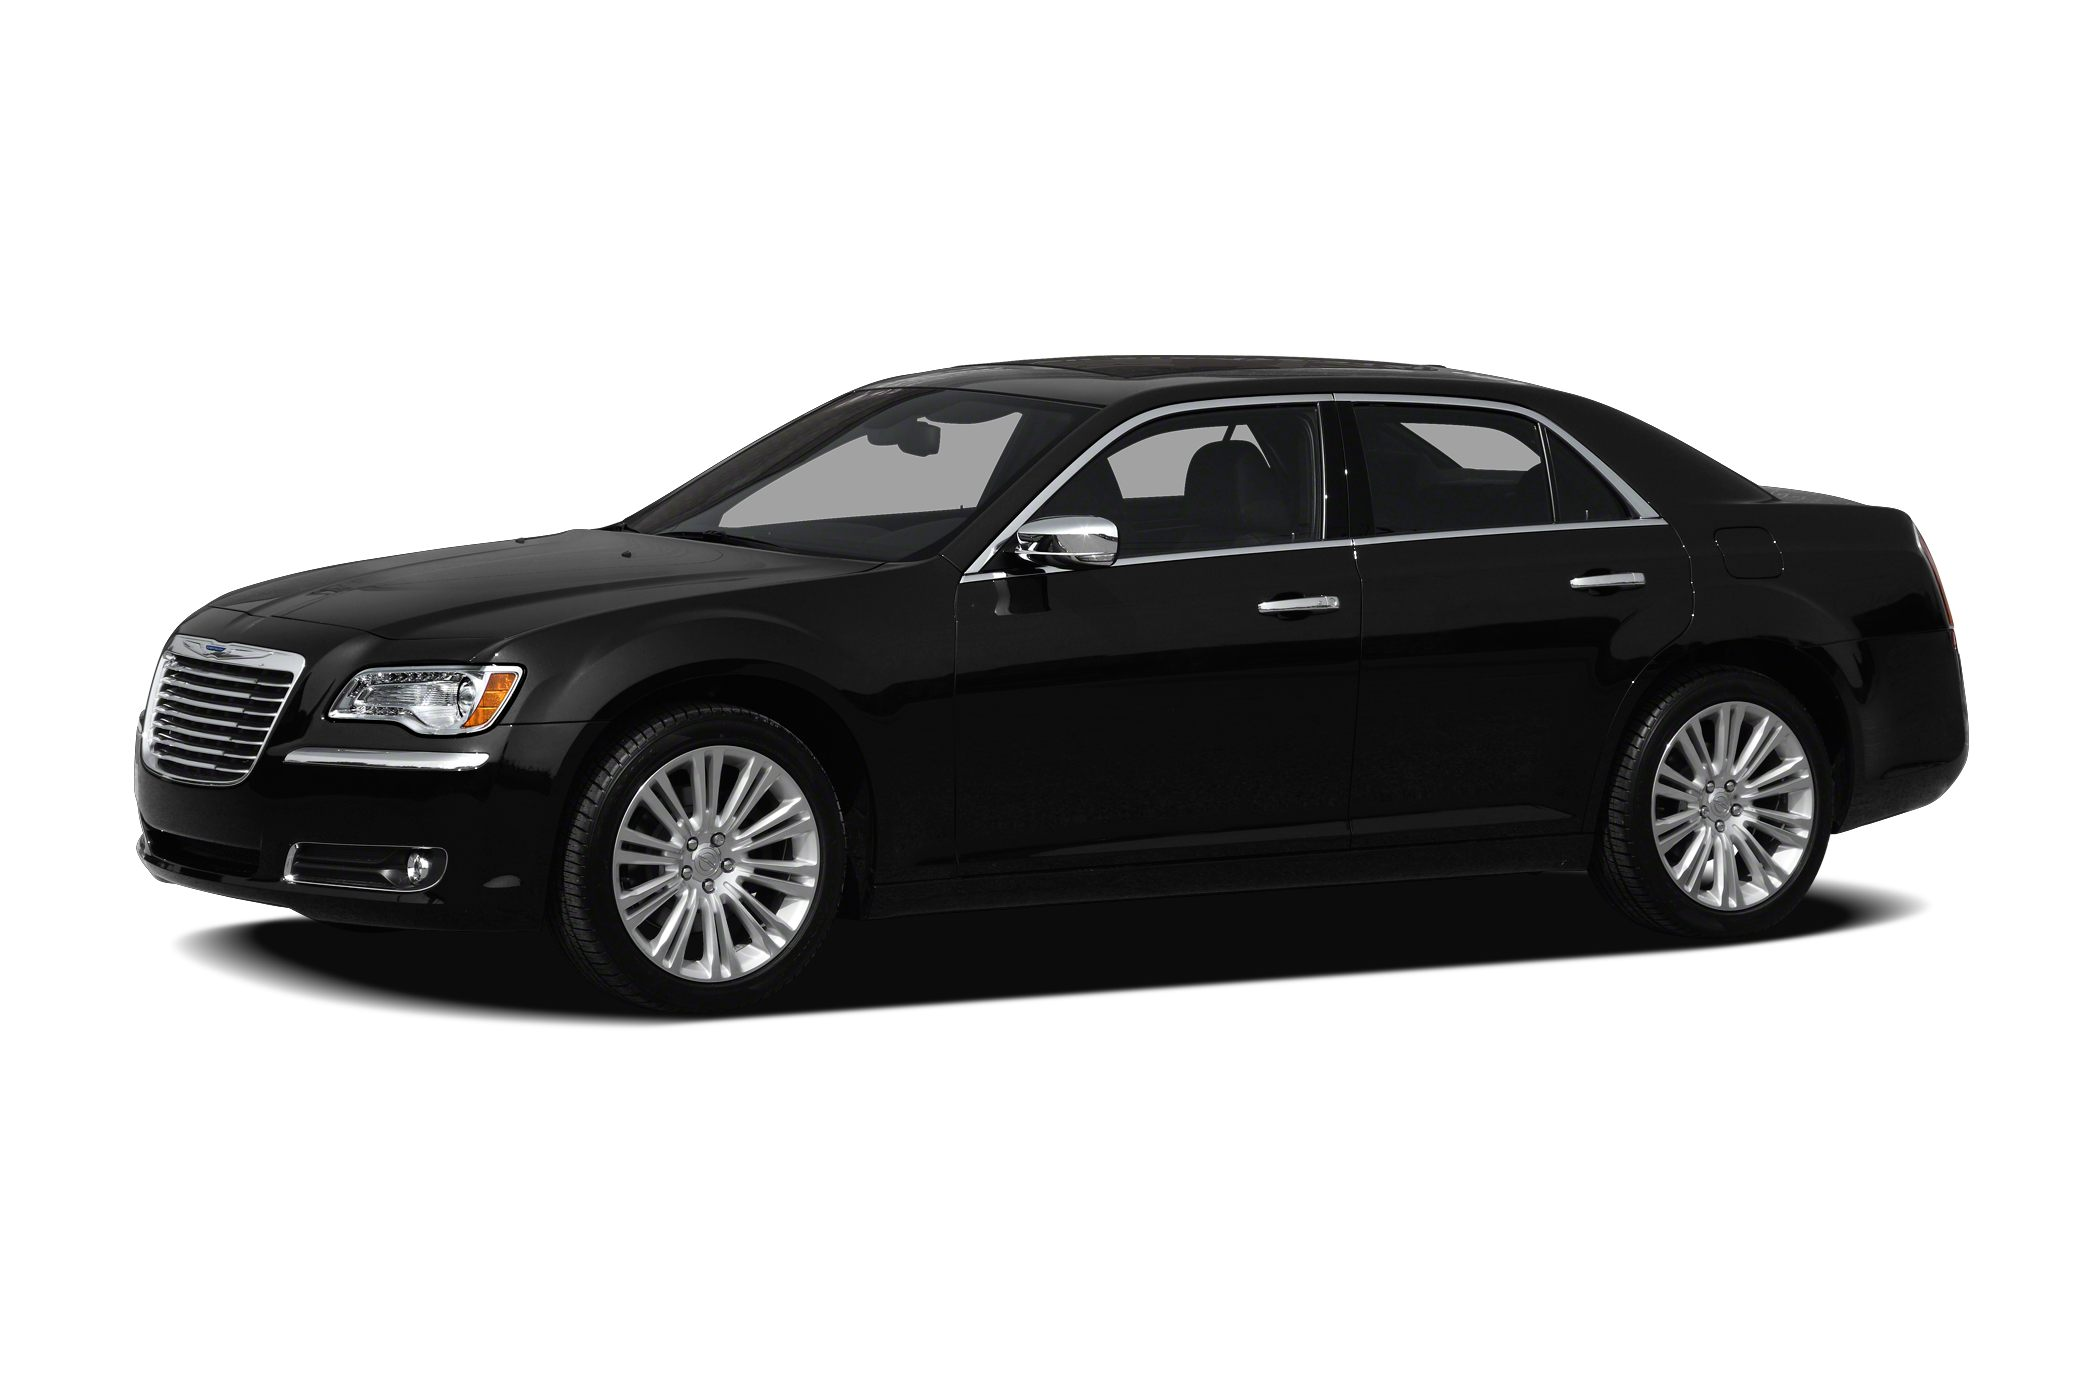 2012 Chrysler 300 Base This particular One-Owner 300 Sport Sedan is beautiful Our trade-in this